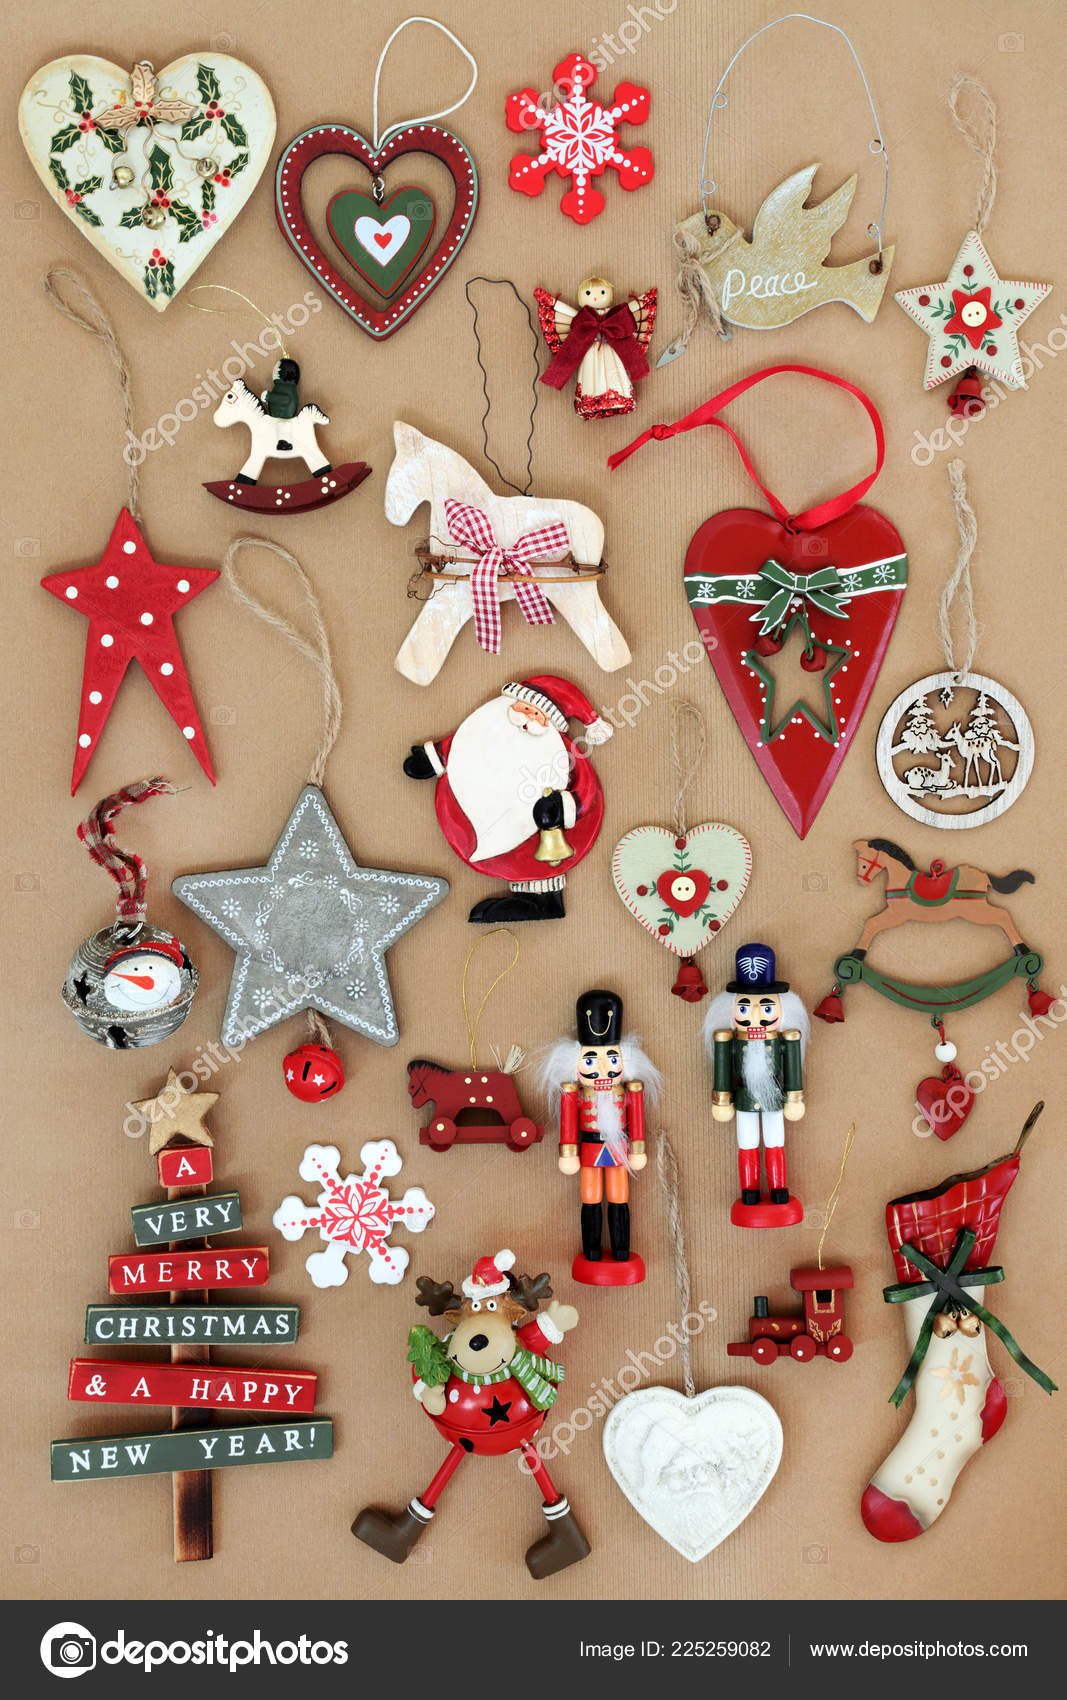 Old Fashioned Christmas Tree Decorations.Pictures Old Fashioned Christmas Tree Old Fashioned Retro